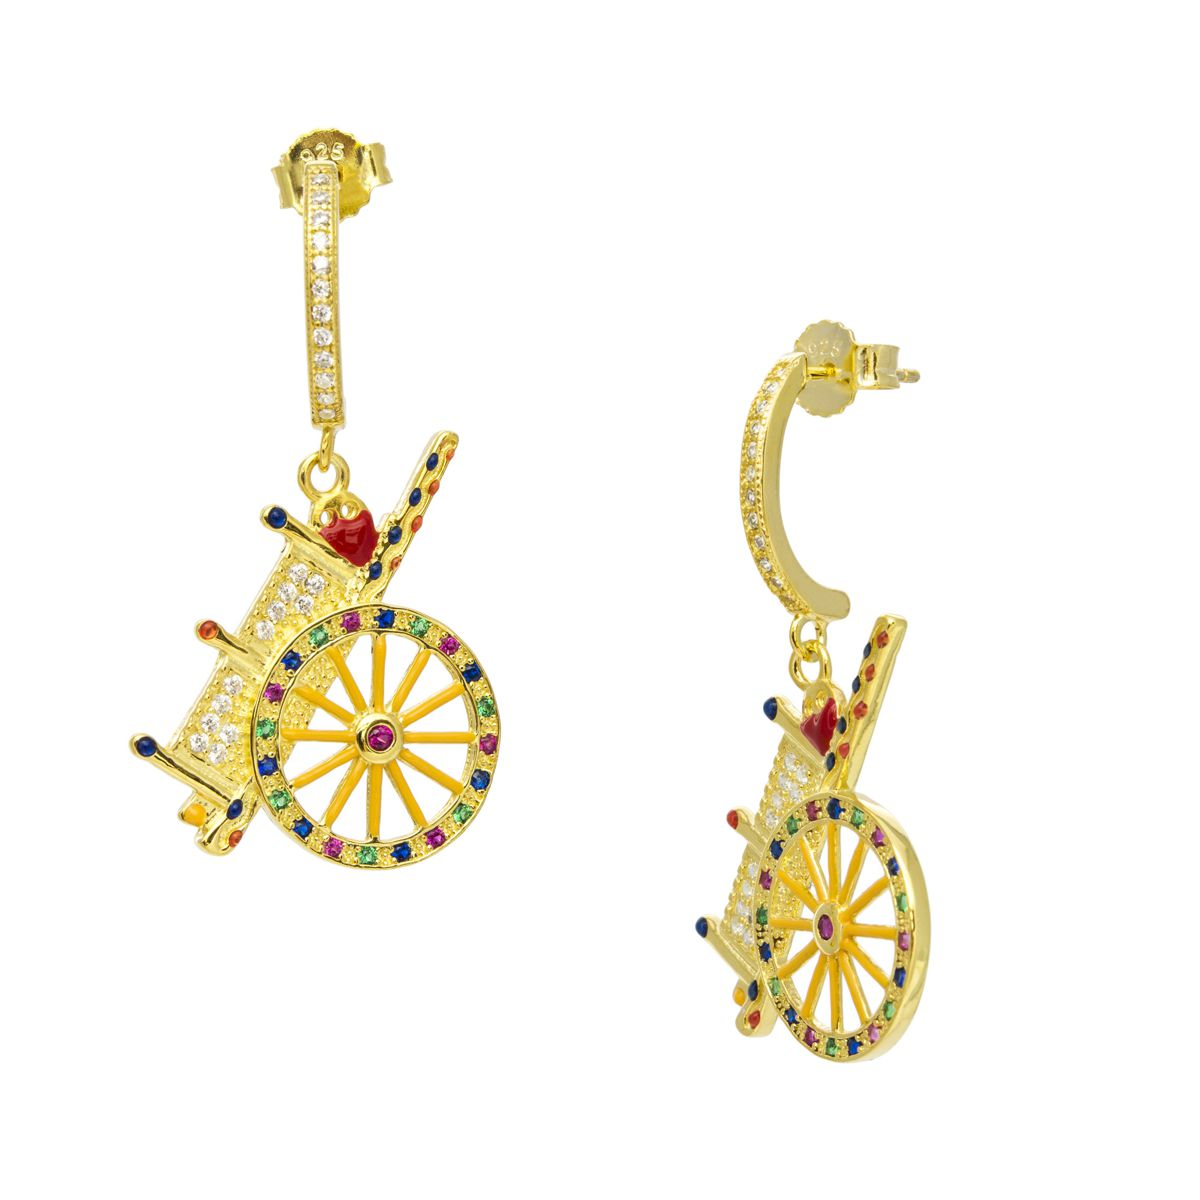 HANDCART PENDANT GOLD EARRINGS Gold M'AMI SICILY JEWELS